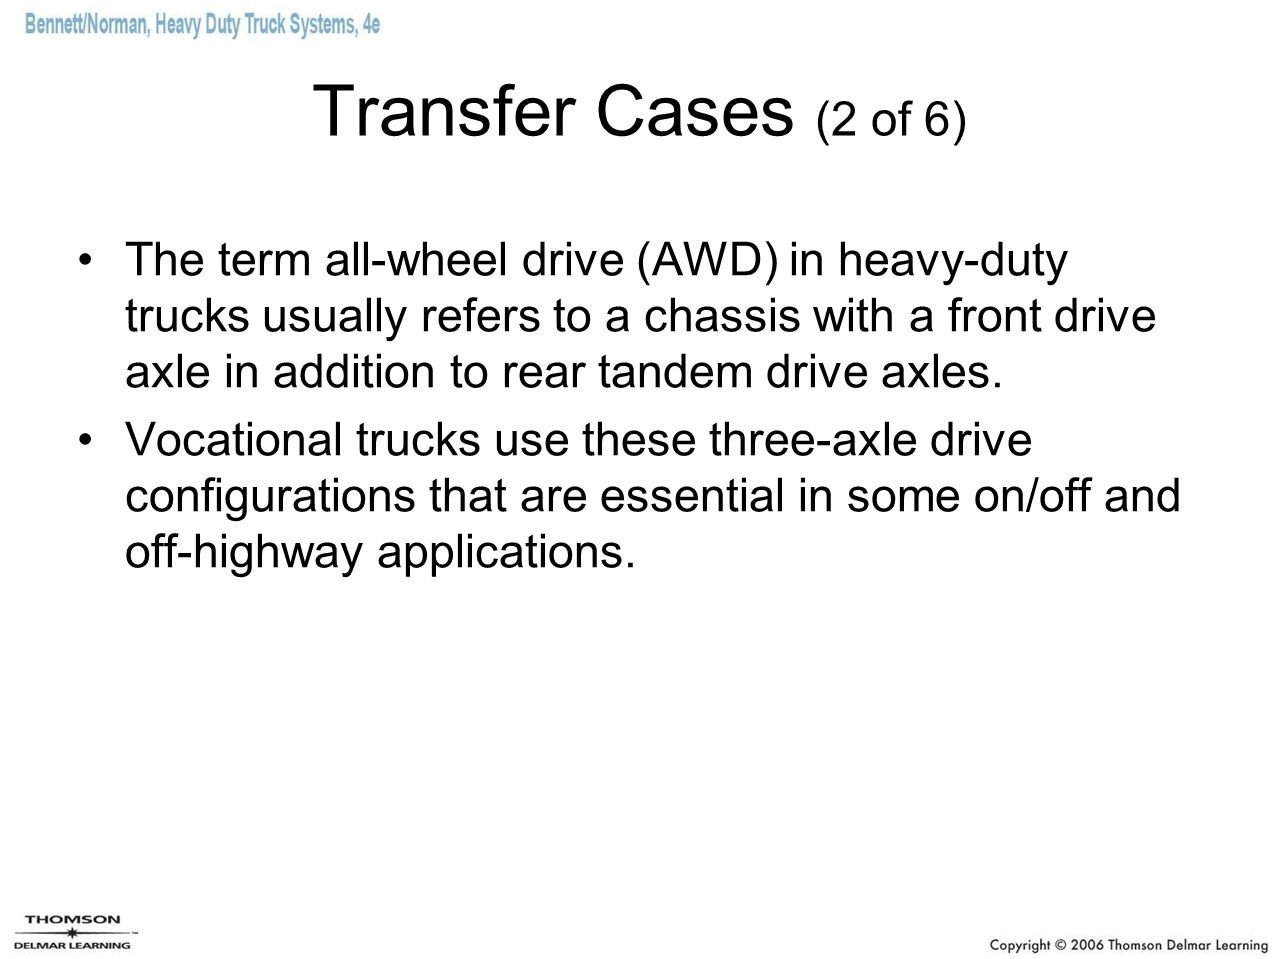 Transfer Cases (2 of 6) The term all-wheel drive (AWD) in heavy-duty trucks usually refers to a chassis with a front drive axle in addition to rear ta